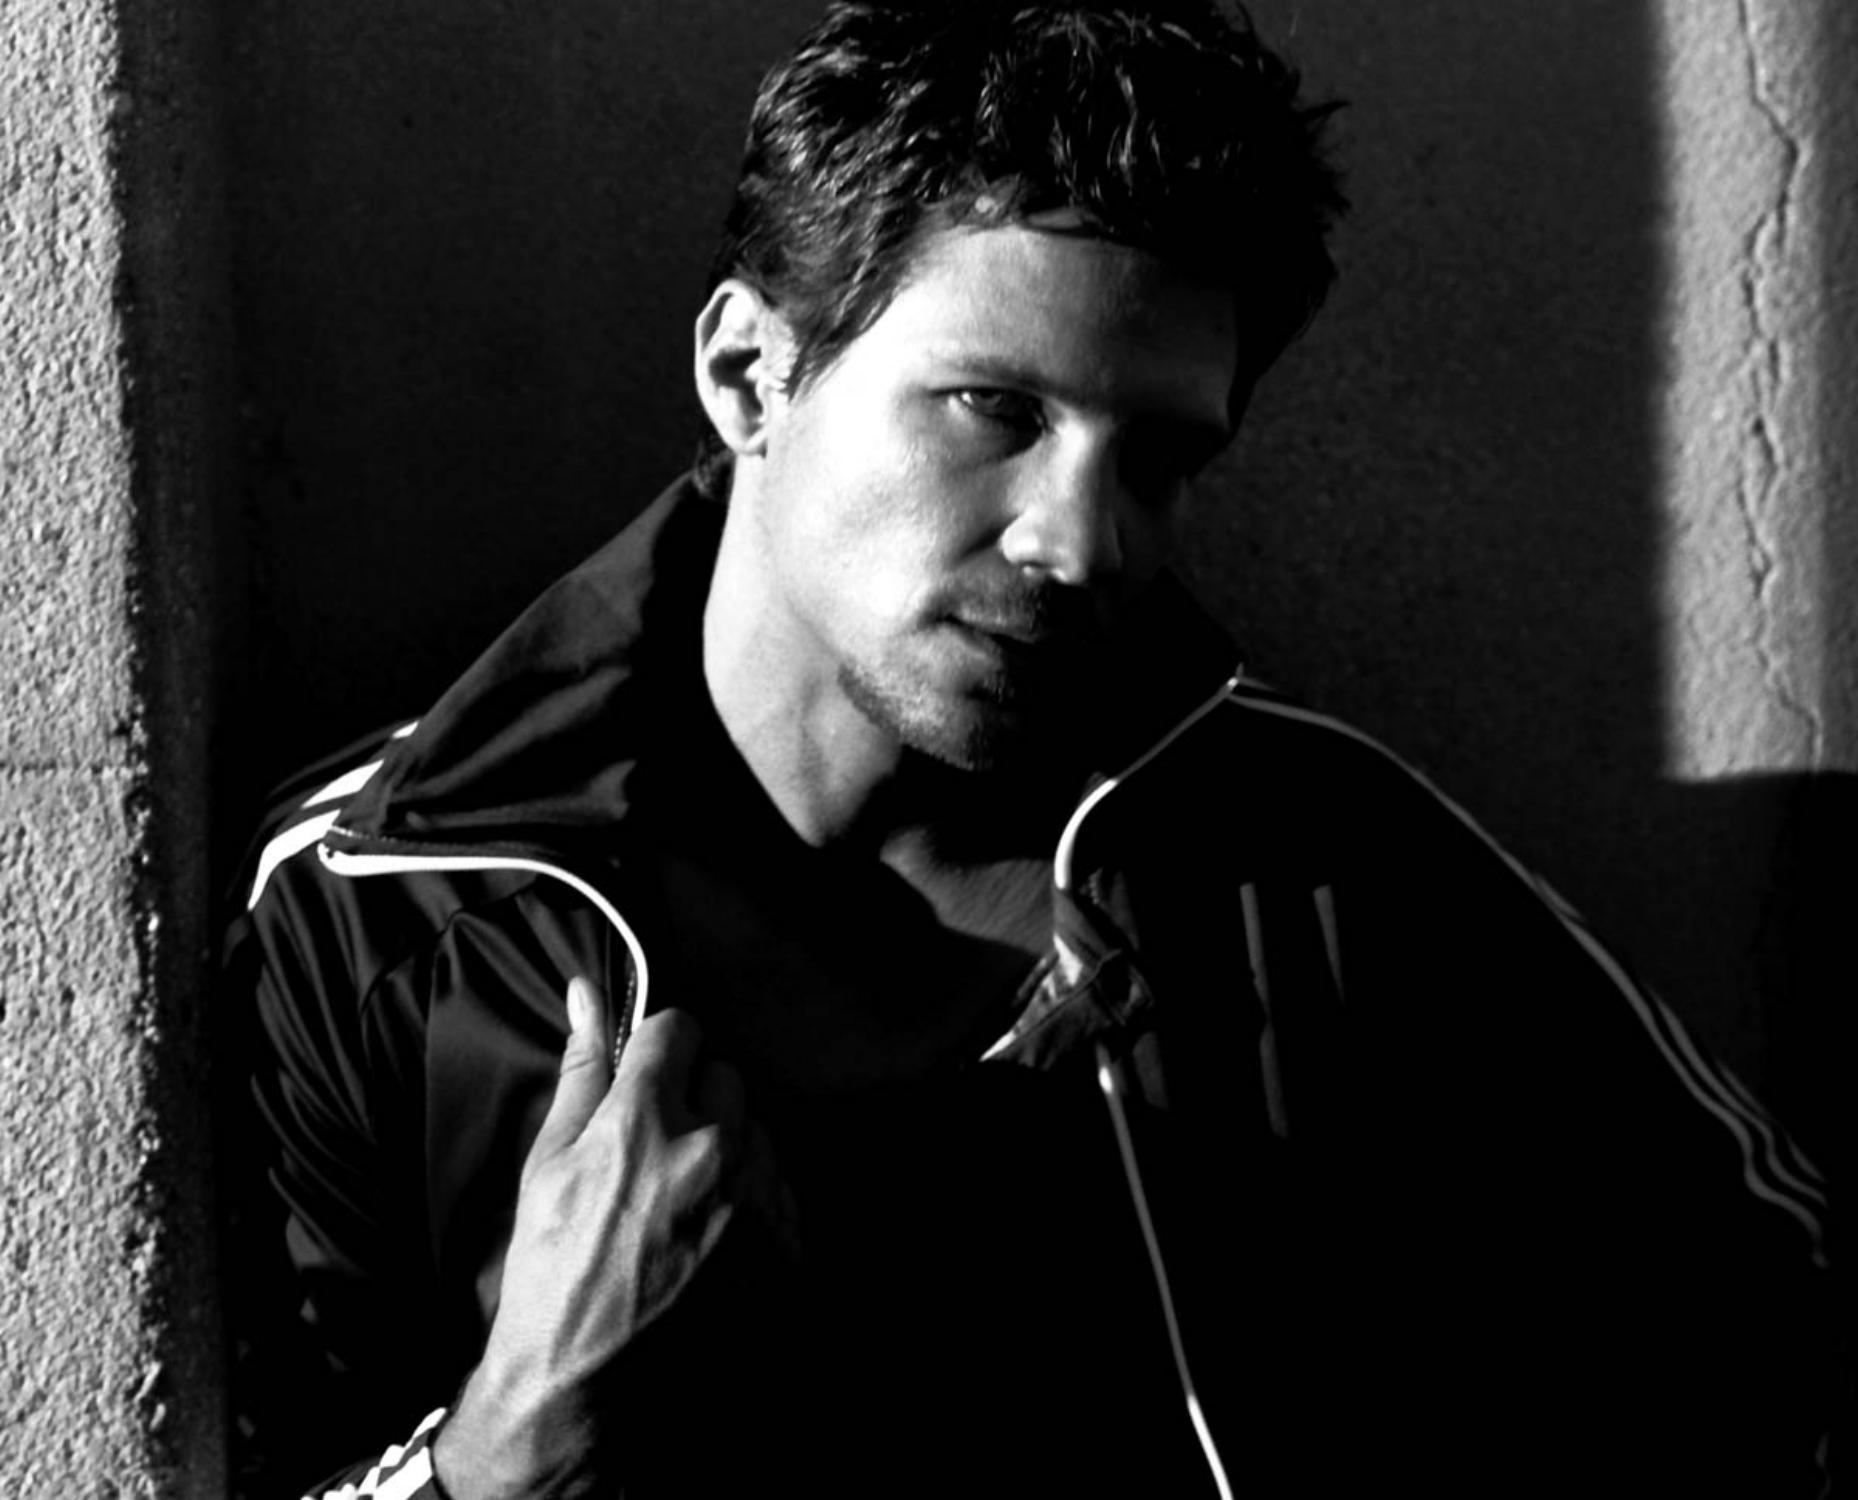 marc blucas y su esposamarc blucas and ryan haddon, marc blucas movies, marc blucas buffy, marc blucas wife, marc blucas instagram, marc blucas 2015, marc blucas facebook, marc blucas imdb, marc blucas wedding, marc blucas net worth, marc blucas ryan haddon, marc blucas y su esposa, marc blucas height, marc blucas and sarah michelle gellar, marc blucas shirtless, marc blucas twitter, marc blucas gay, marc blucas biography